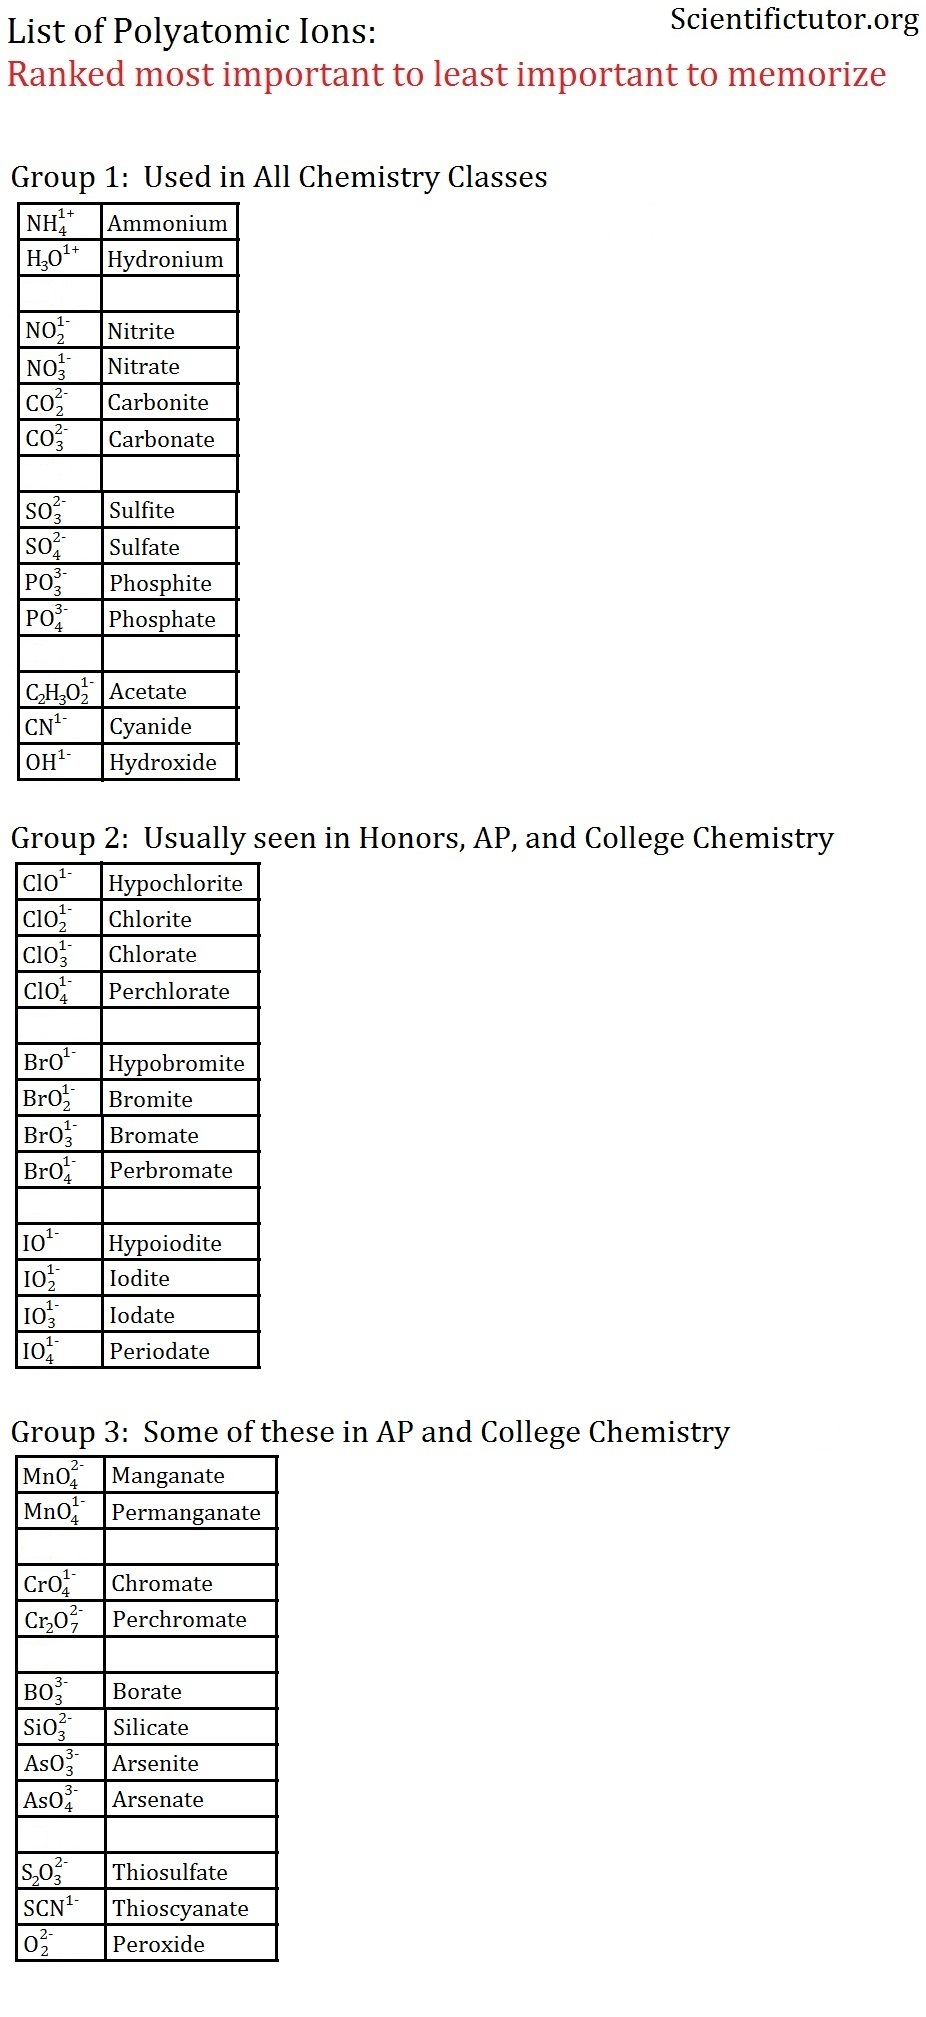 Uncategorized Polyatomic Ion Worksheet chem memorization of polyatomic ion charges scientific tutor ions list